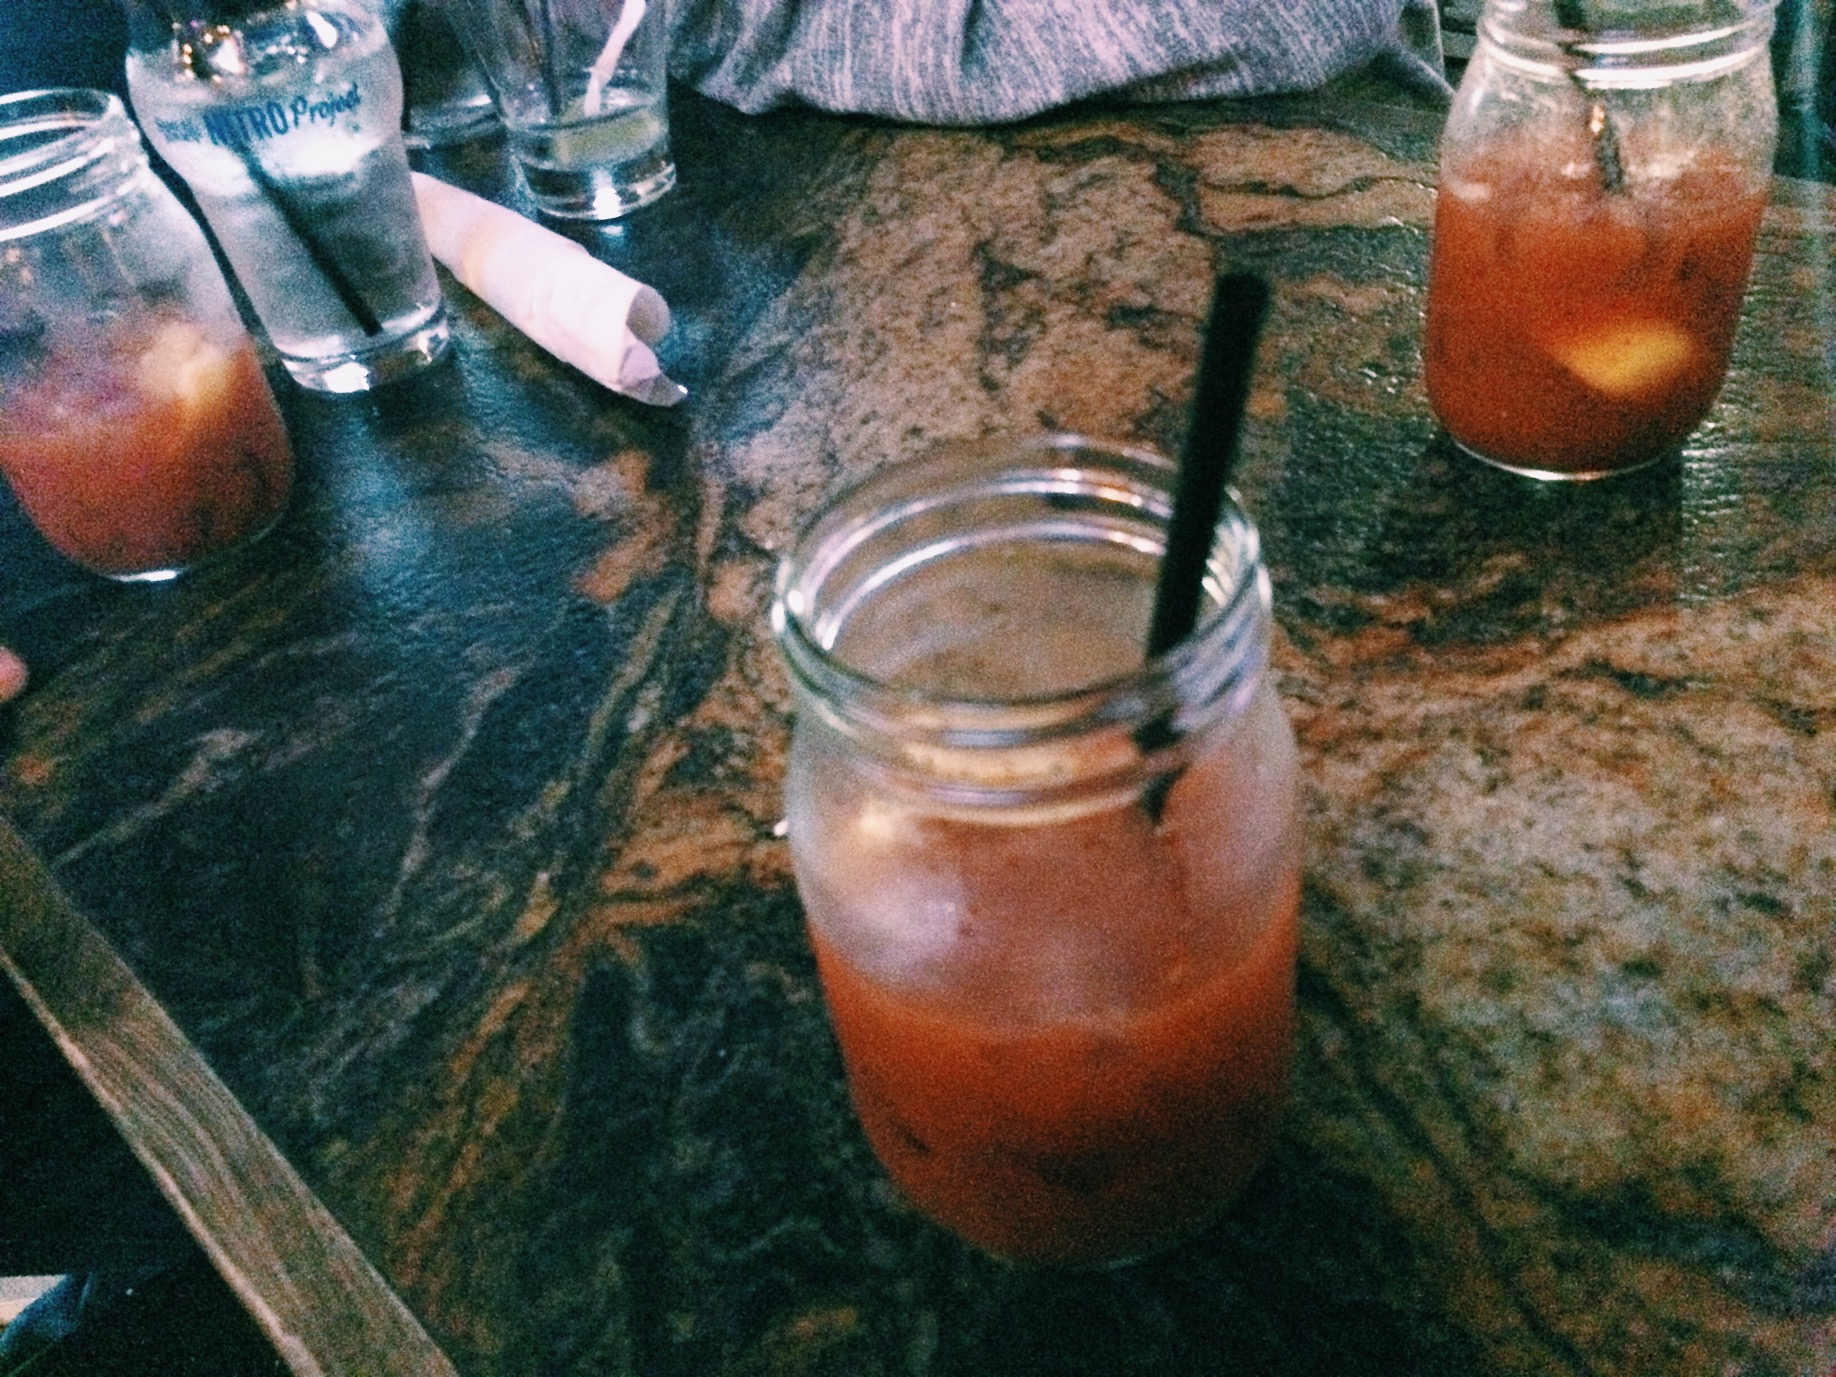 After a few rounds of beers we had a round of Bloody Marys. Shit was good though.